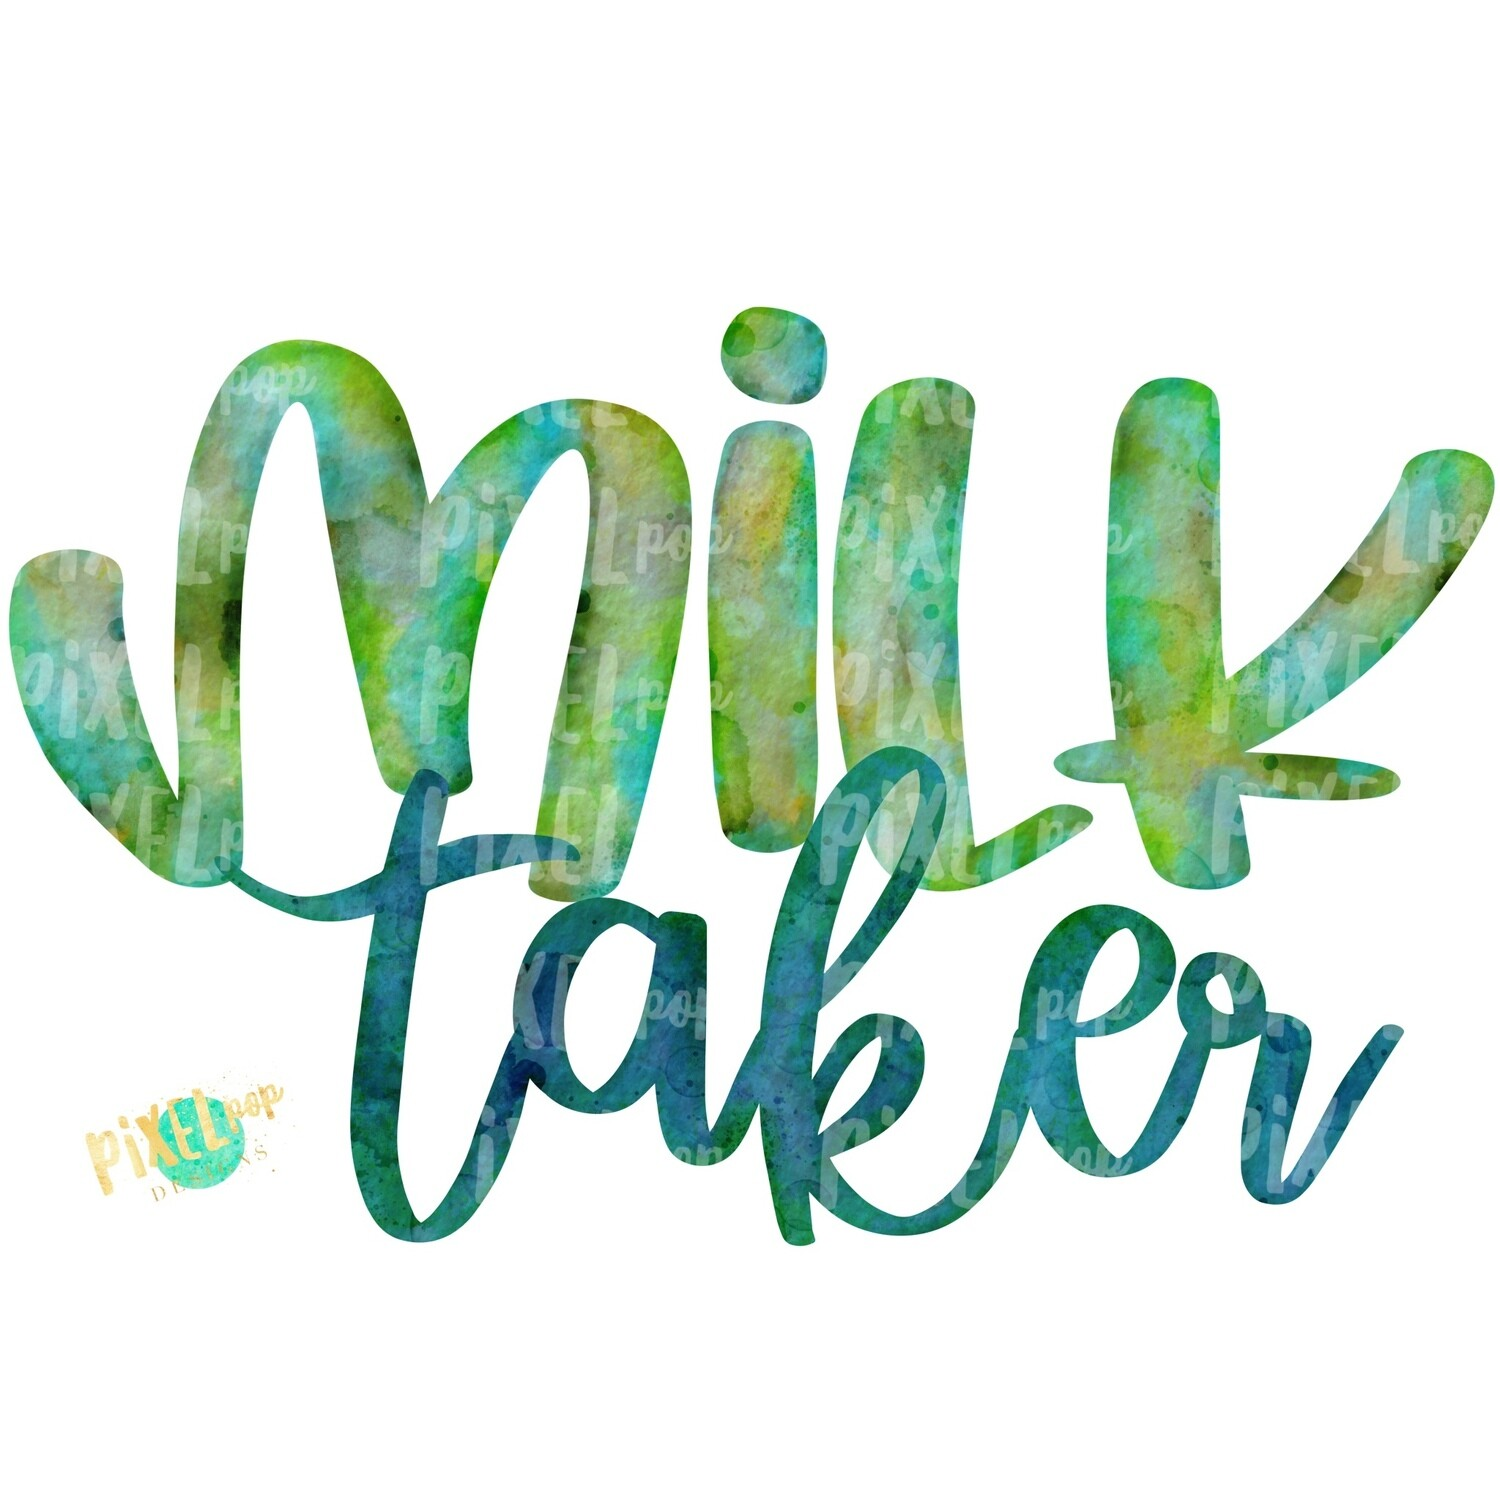 Milk Taker Green Breastfeeding PNG | Breastfeeding Design | Sublimation Design | Hand Painted Watercolor PNG | Digital Download | Mother's Day